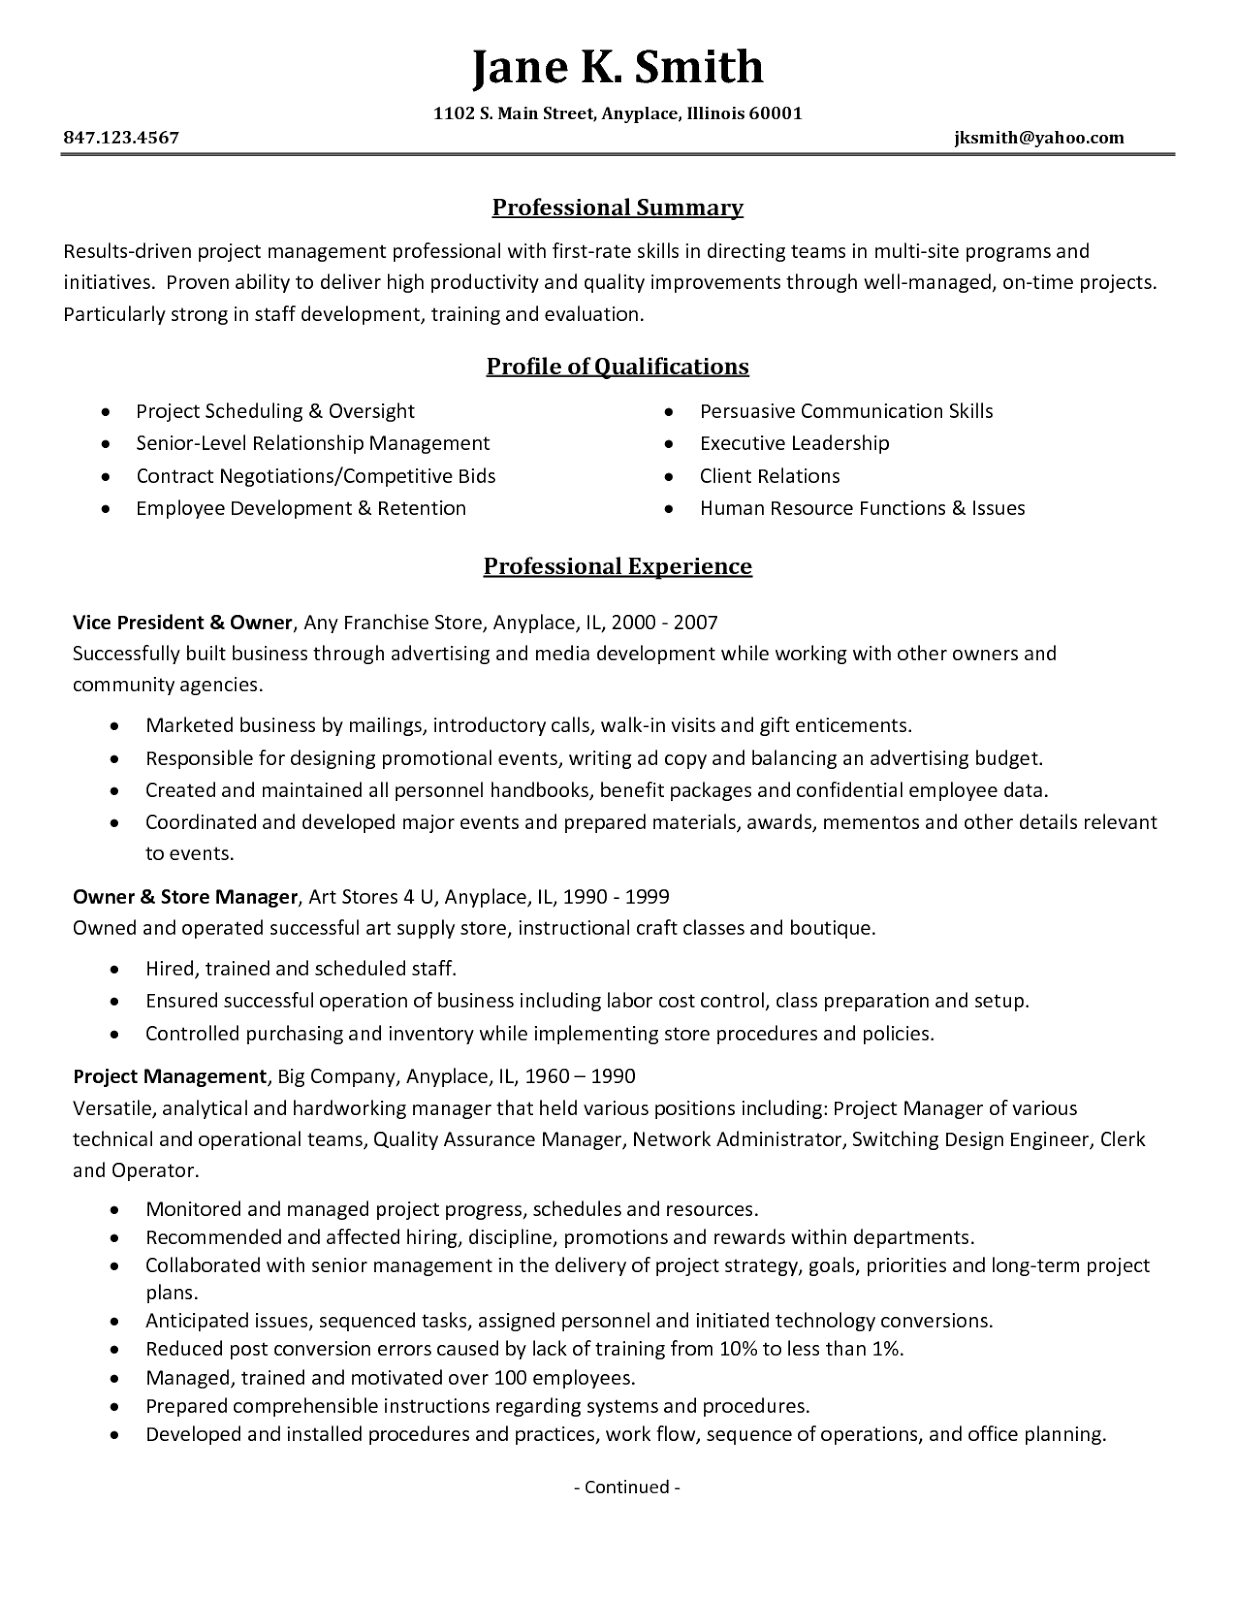 Resume Format For Purchase Manager Project Management Resume Samples 2016 Sample Resumes